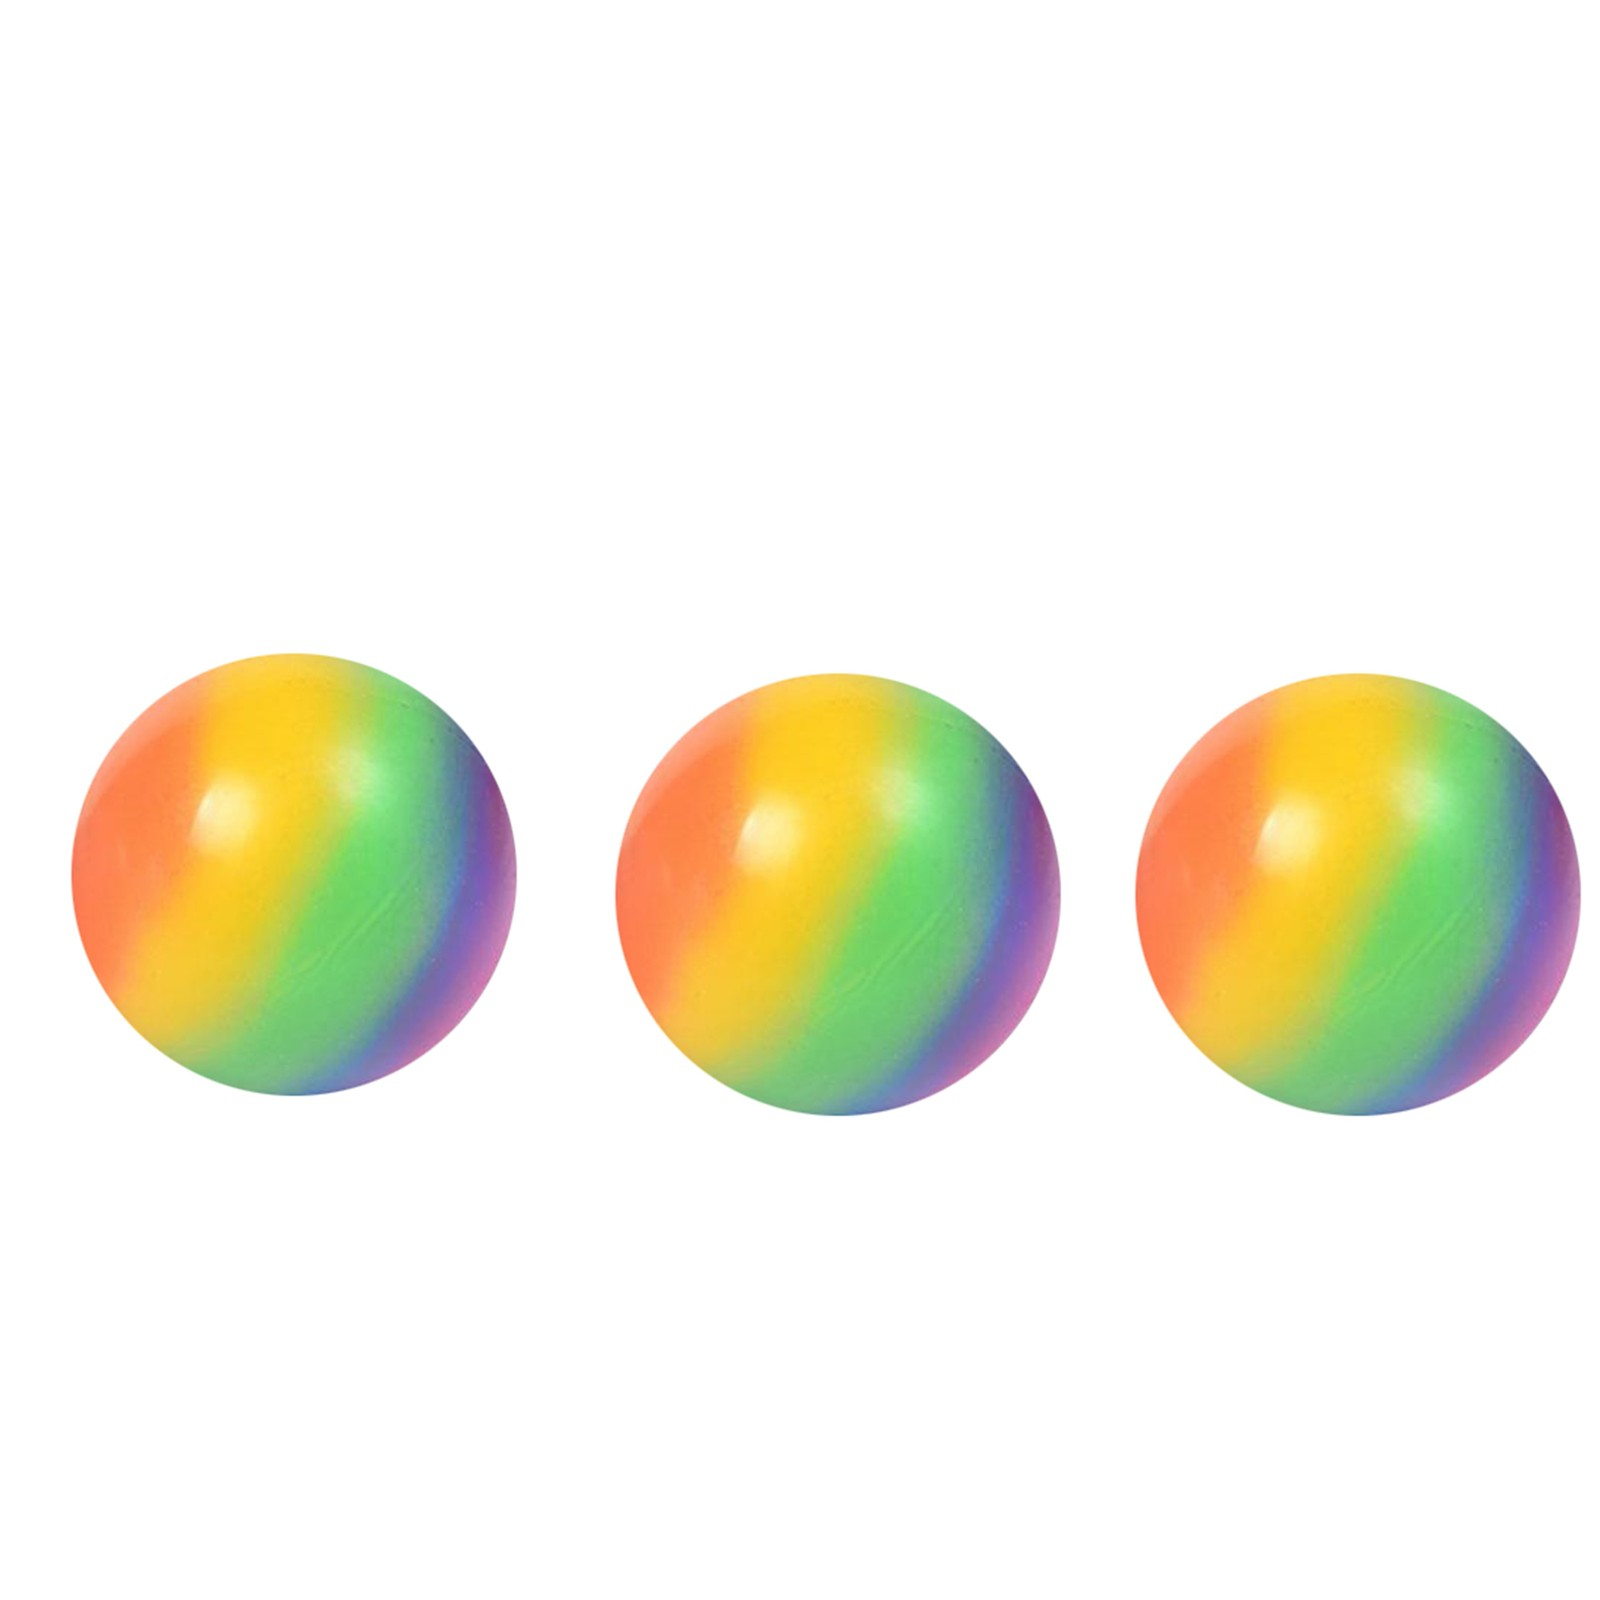 Creative Colorful Vent Ball Decompression Toy Men And Women Decompression Toy Grape Balls Relieve Pressure Balls Hand Fidget Toy img5